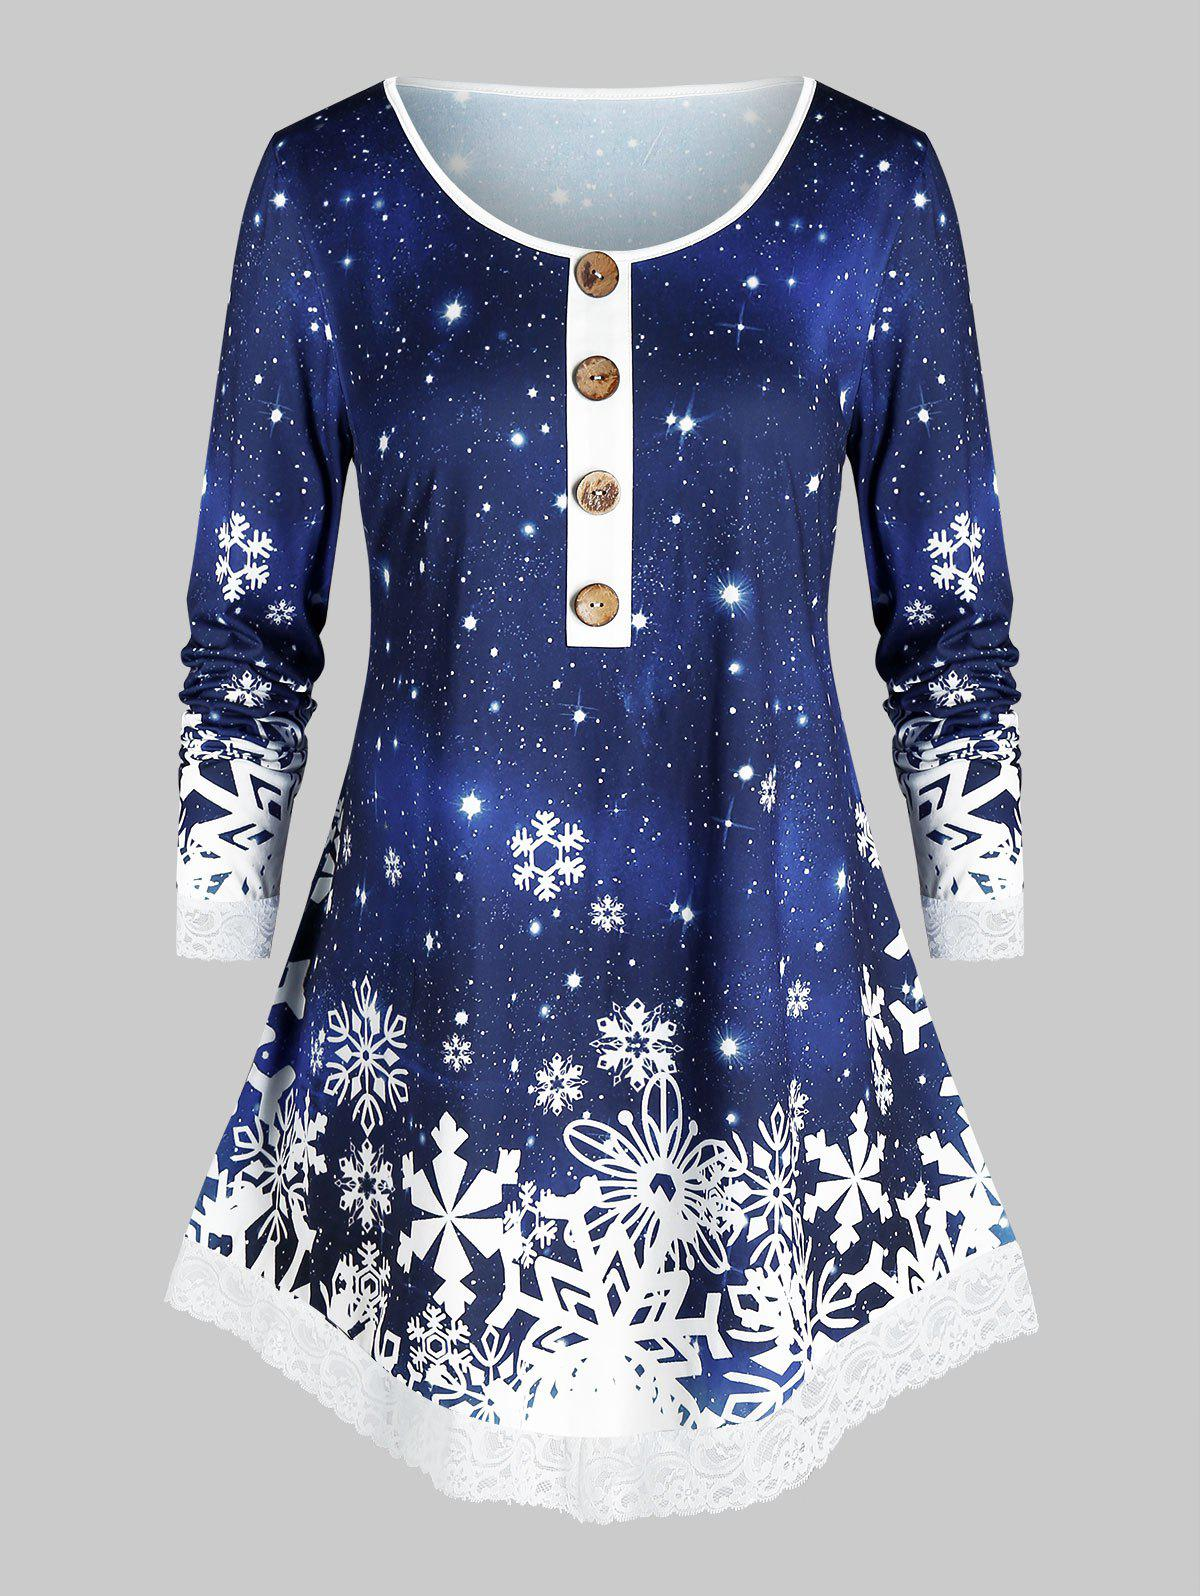 Discount Christmas Mock Button Snowflake Print T Shirt